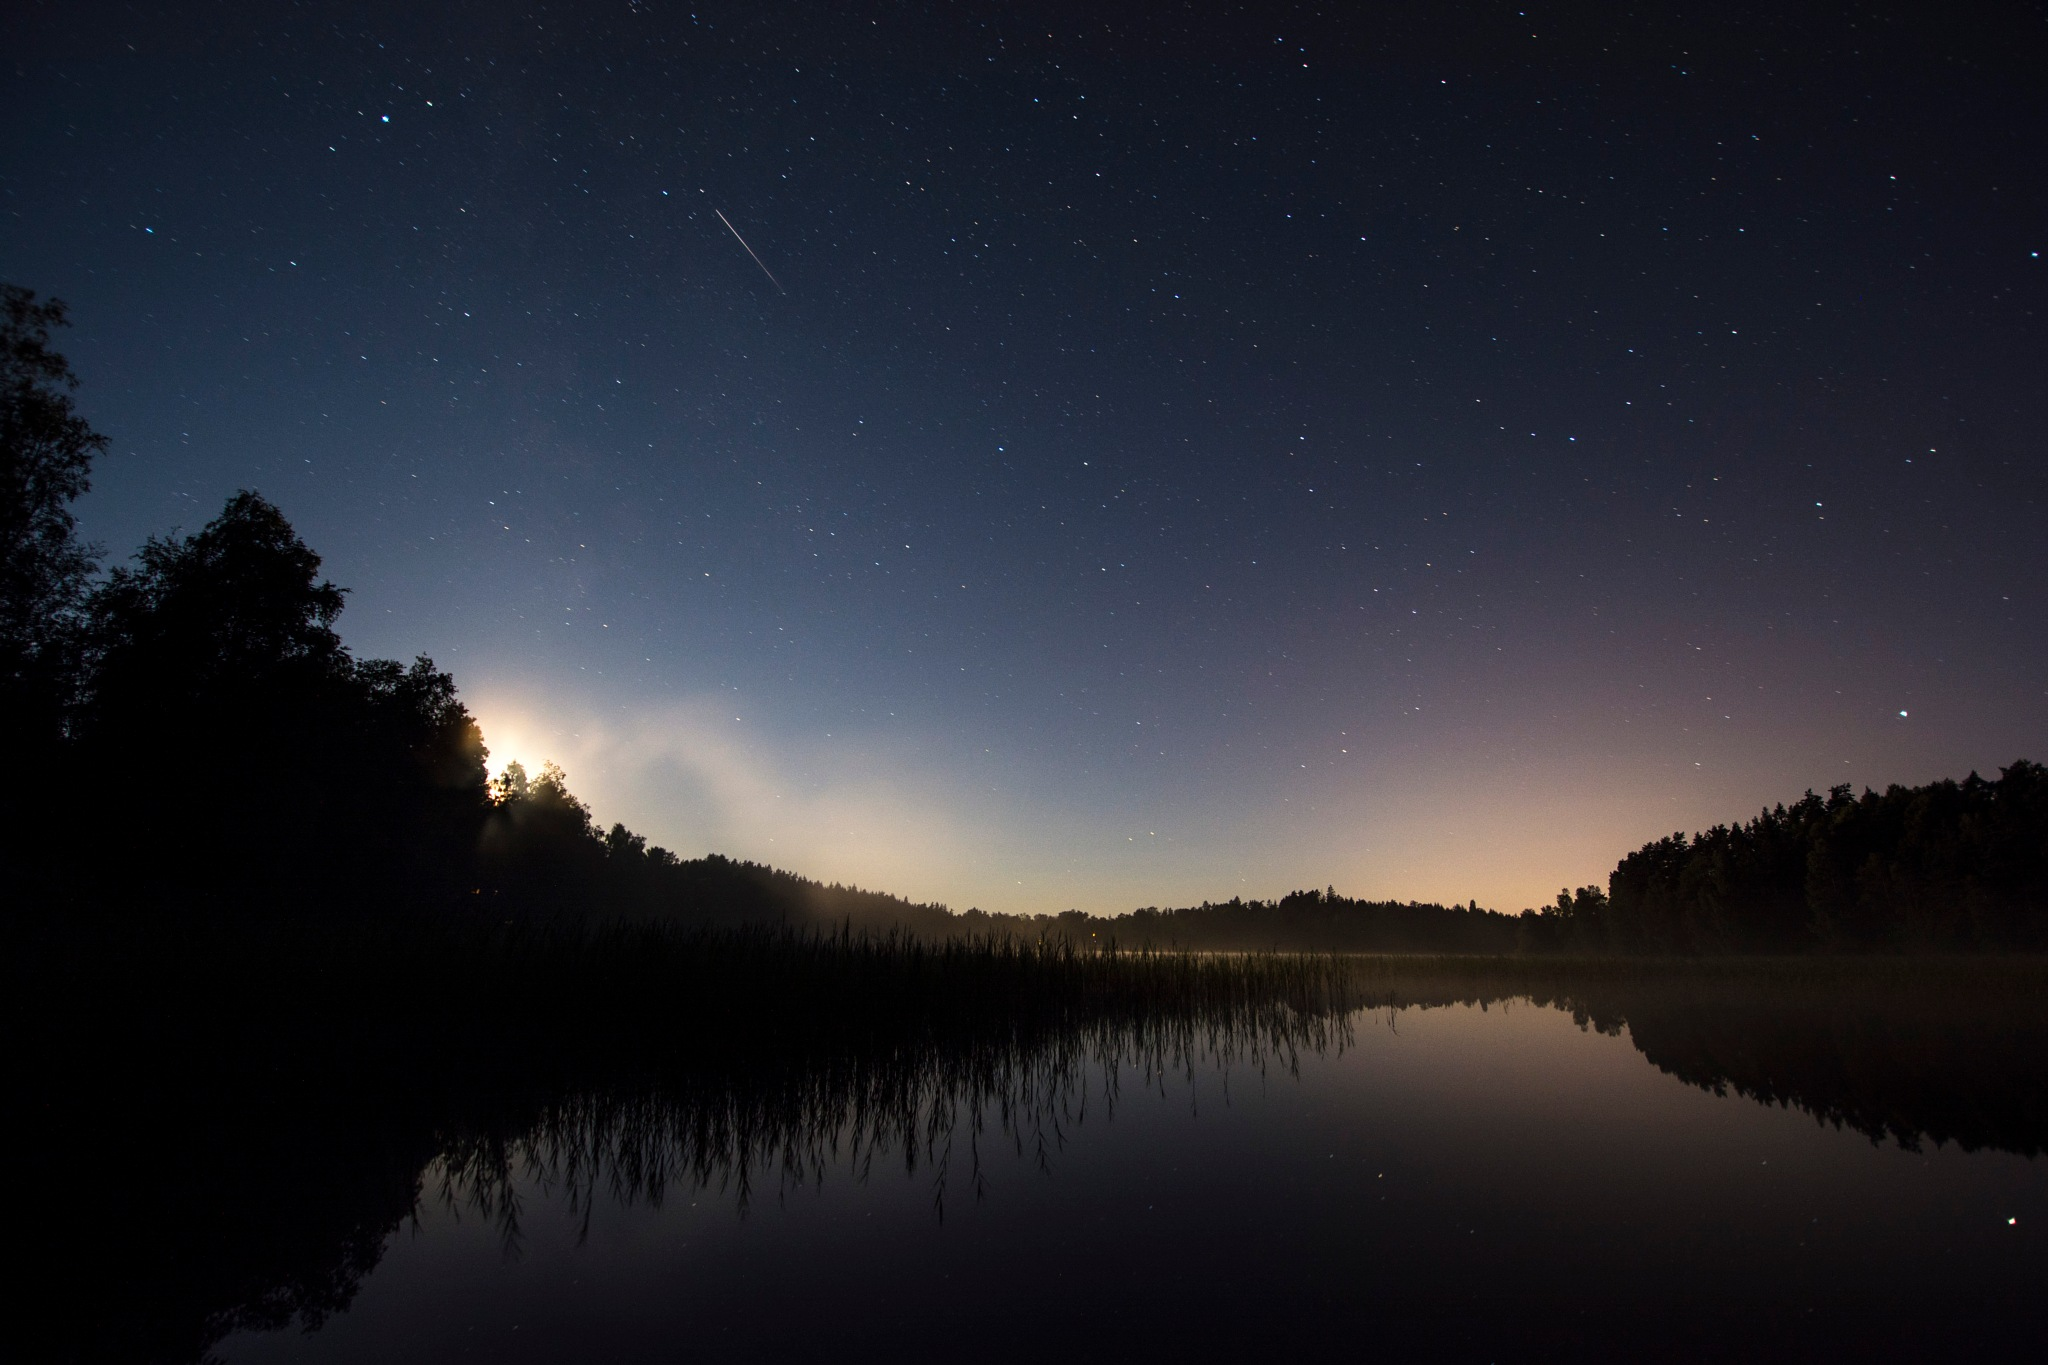 The last of the Perseids by Linda Persson